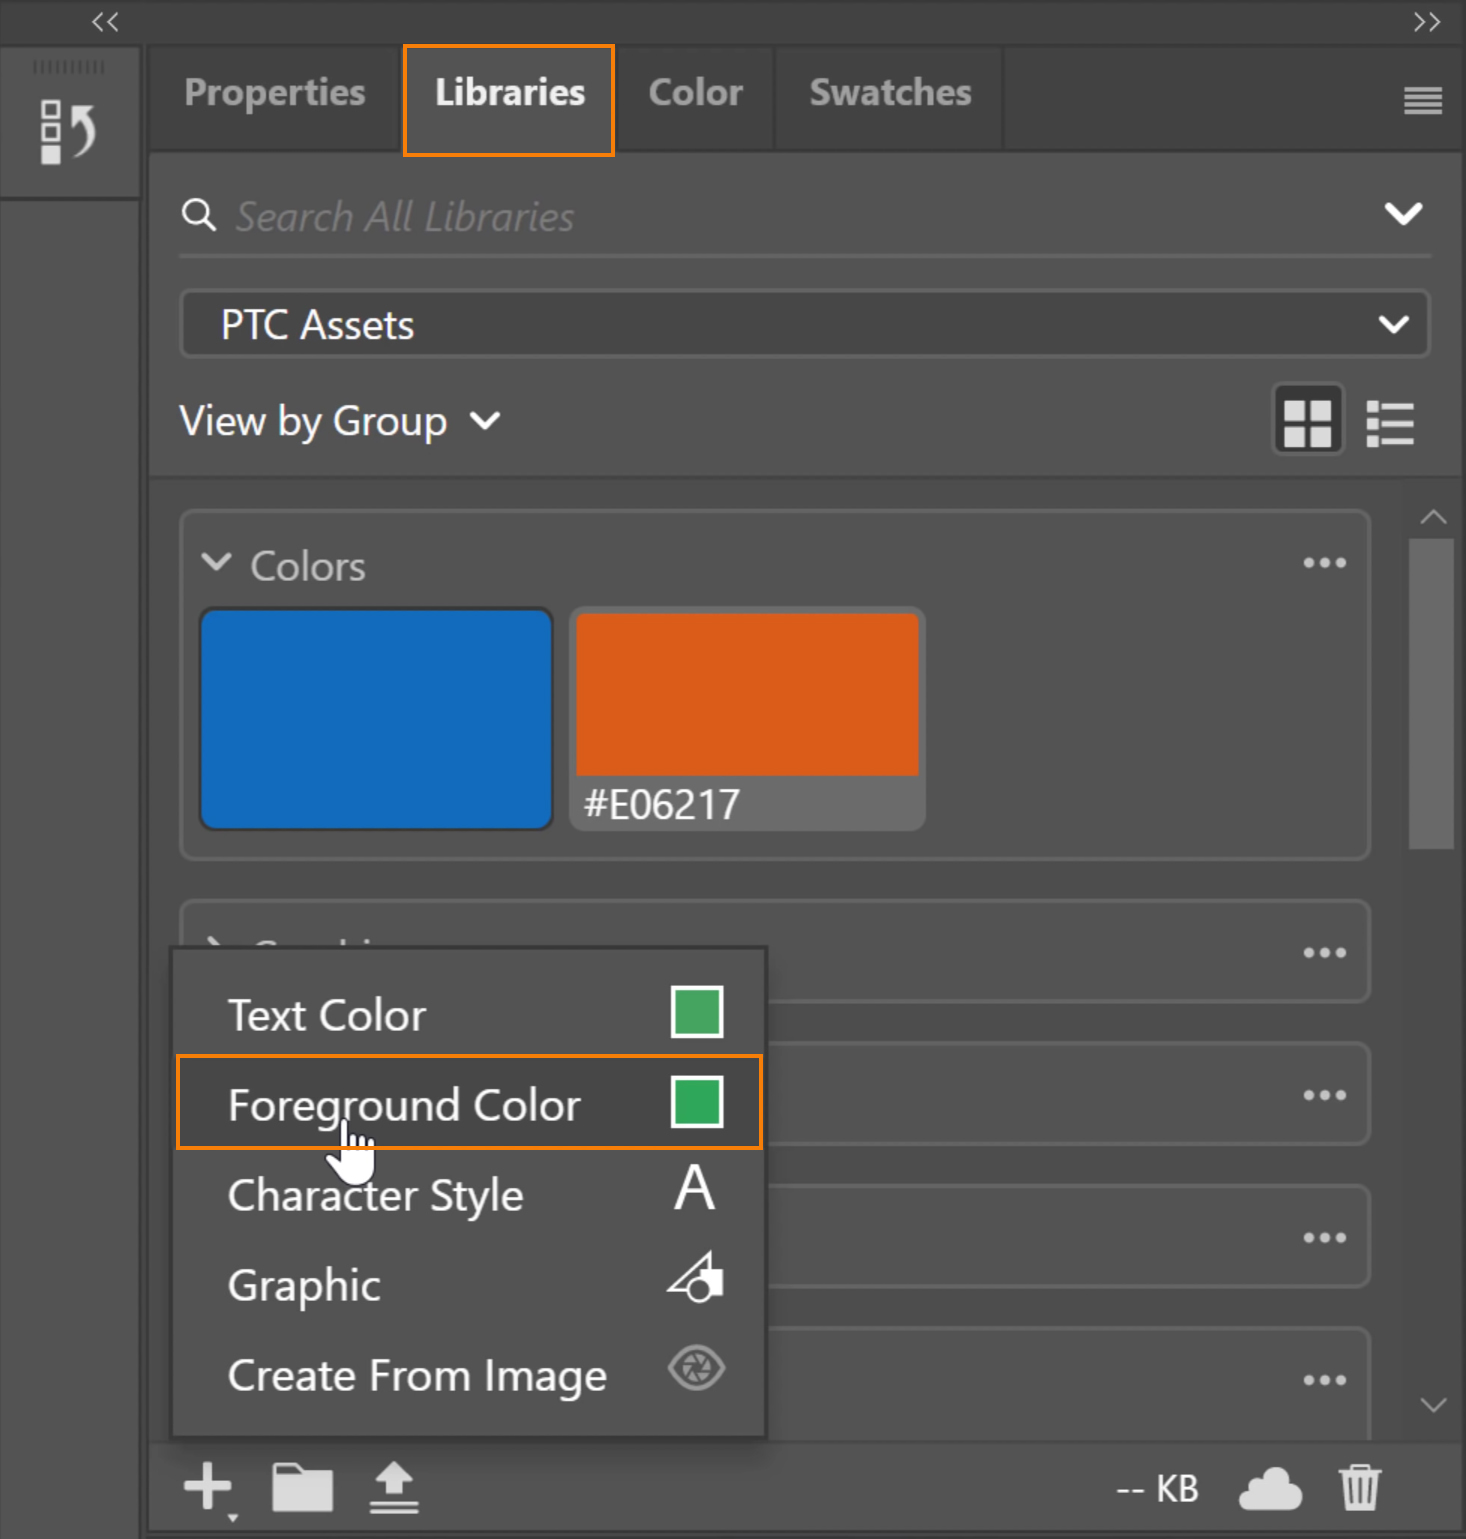 select the current Foreground color or the Text color and add it to your Libraries panel